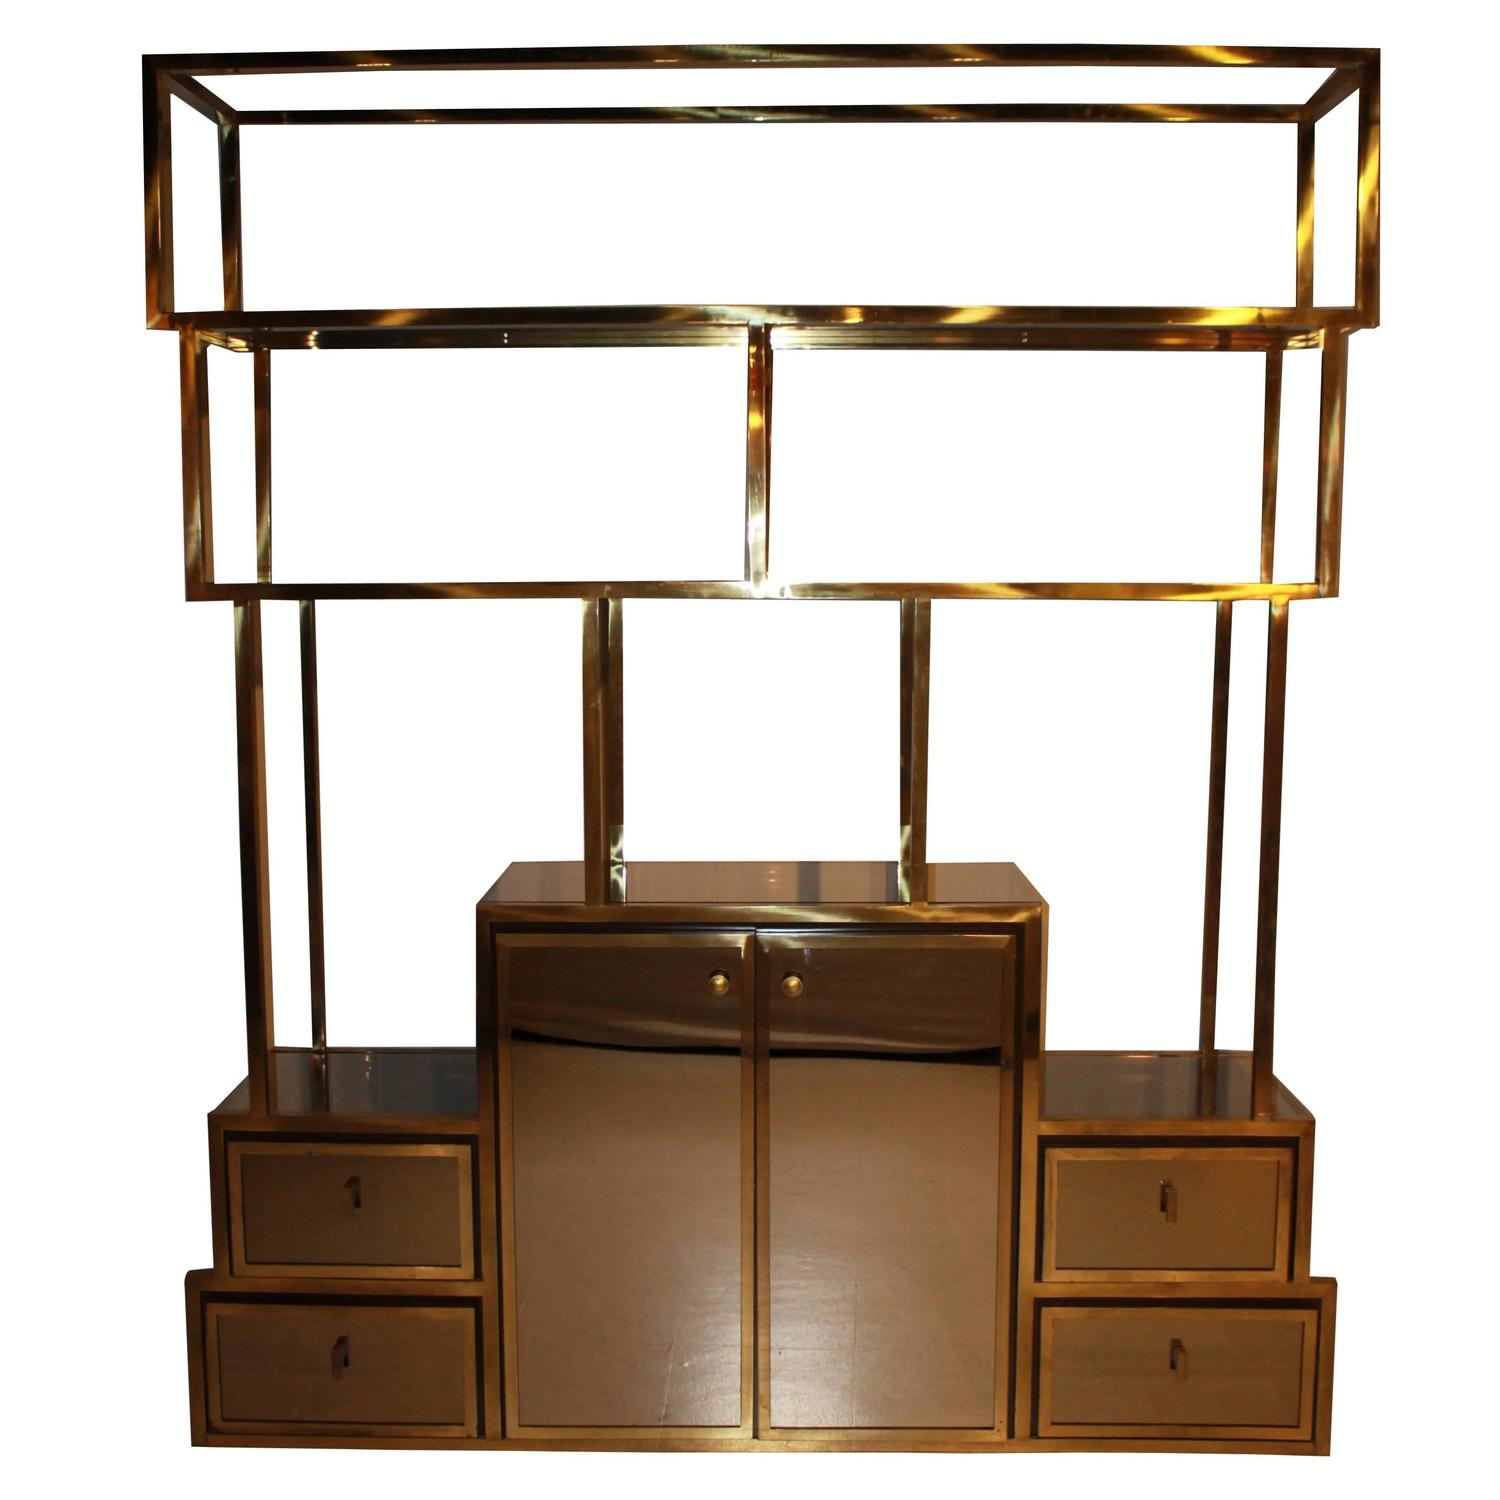 Mastercraft brass etagere at 1stdibs - Etagere charlotte perriand ...